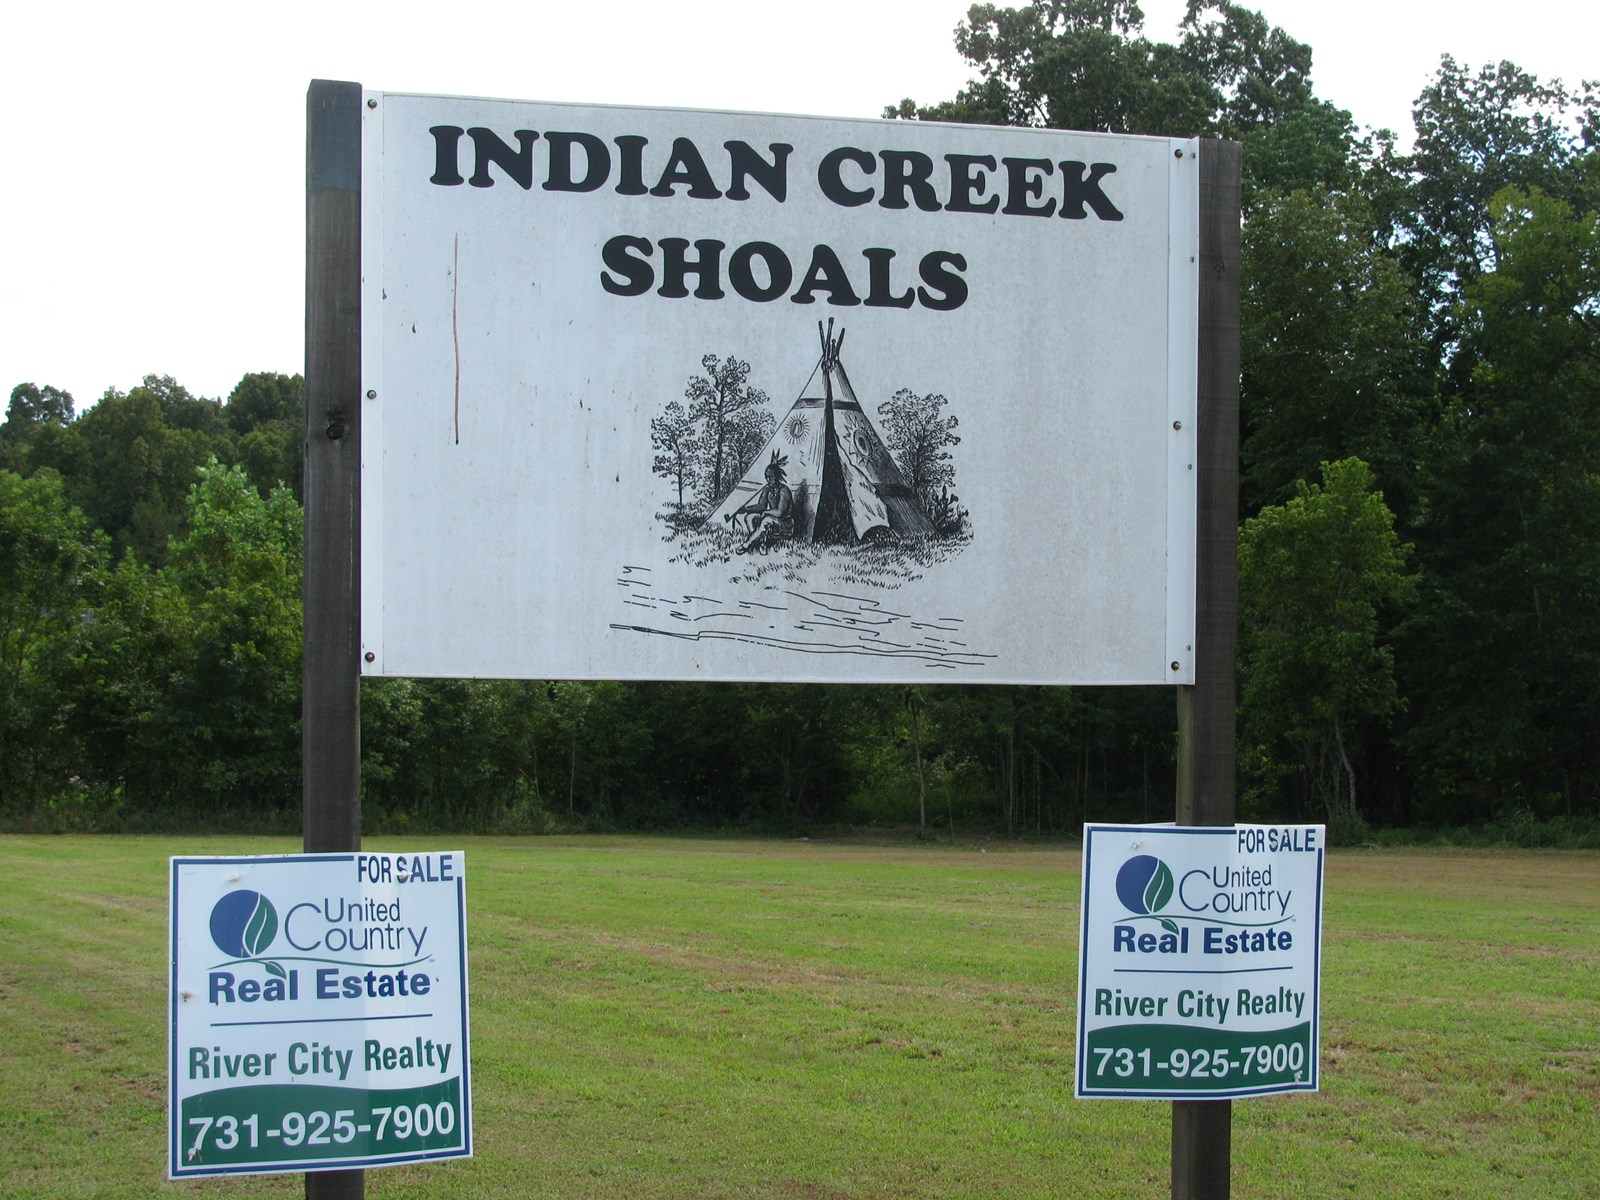 INDIAN CREEK LOT FOR SALE IN SAVANNAH, TN, CAMPING & FISHING